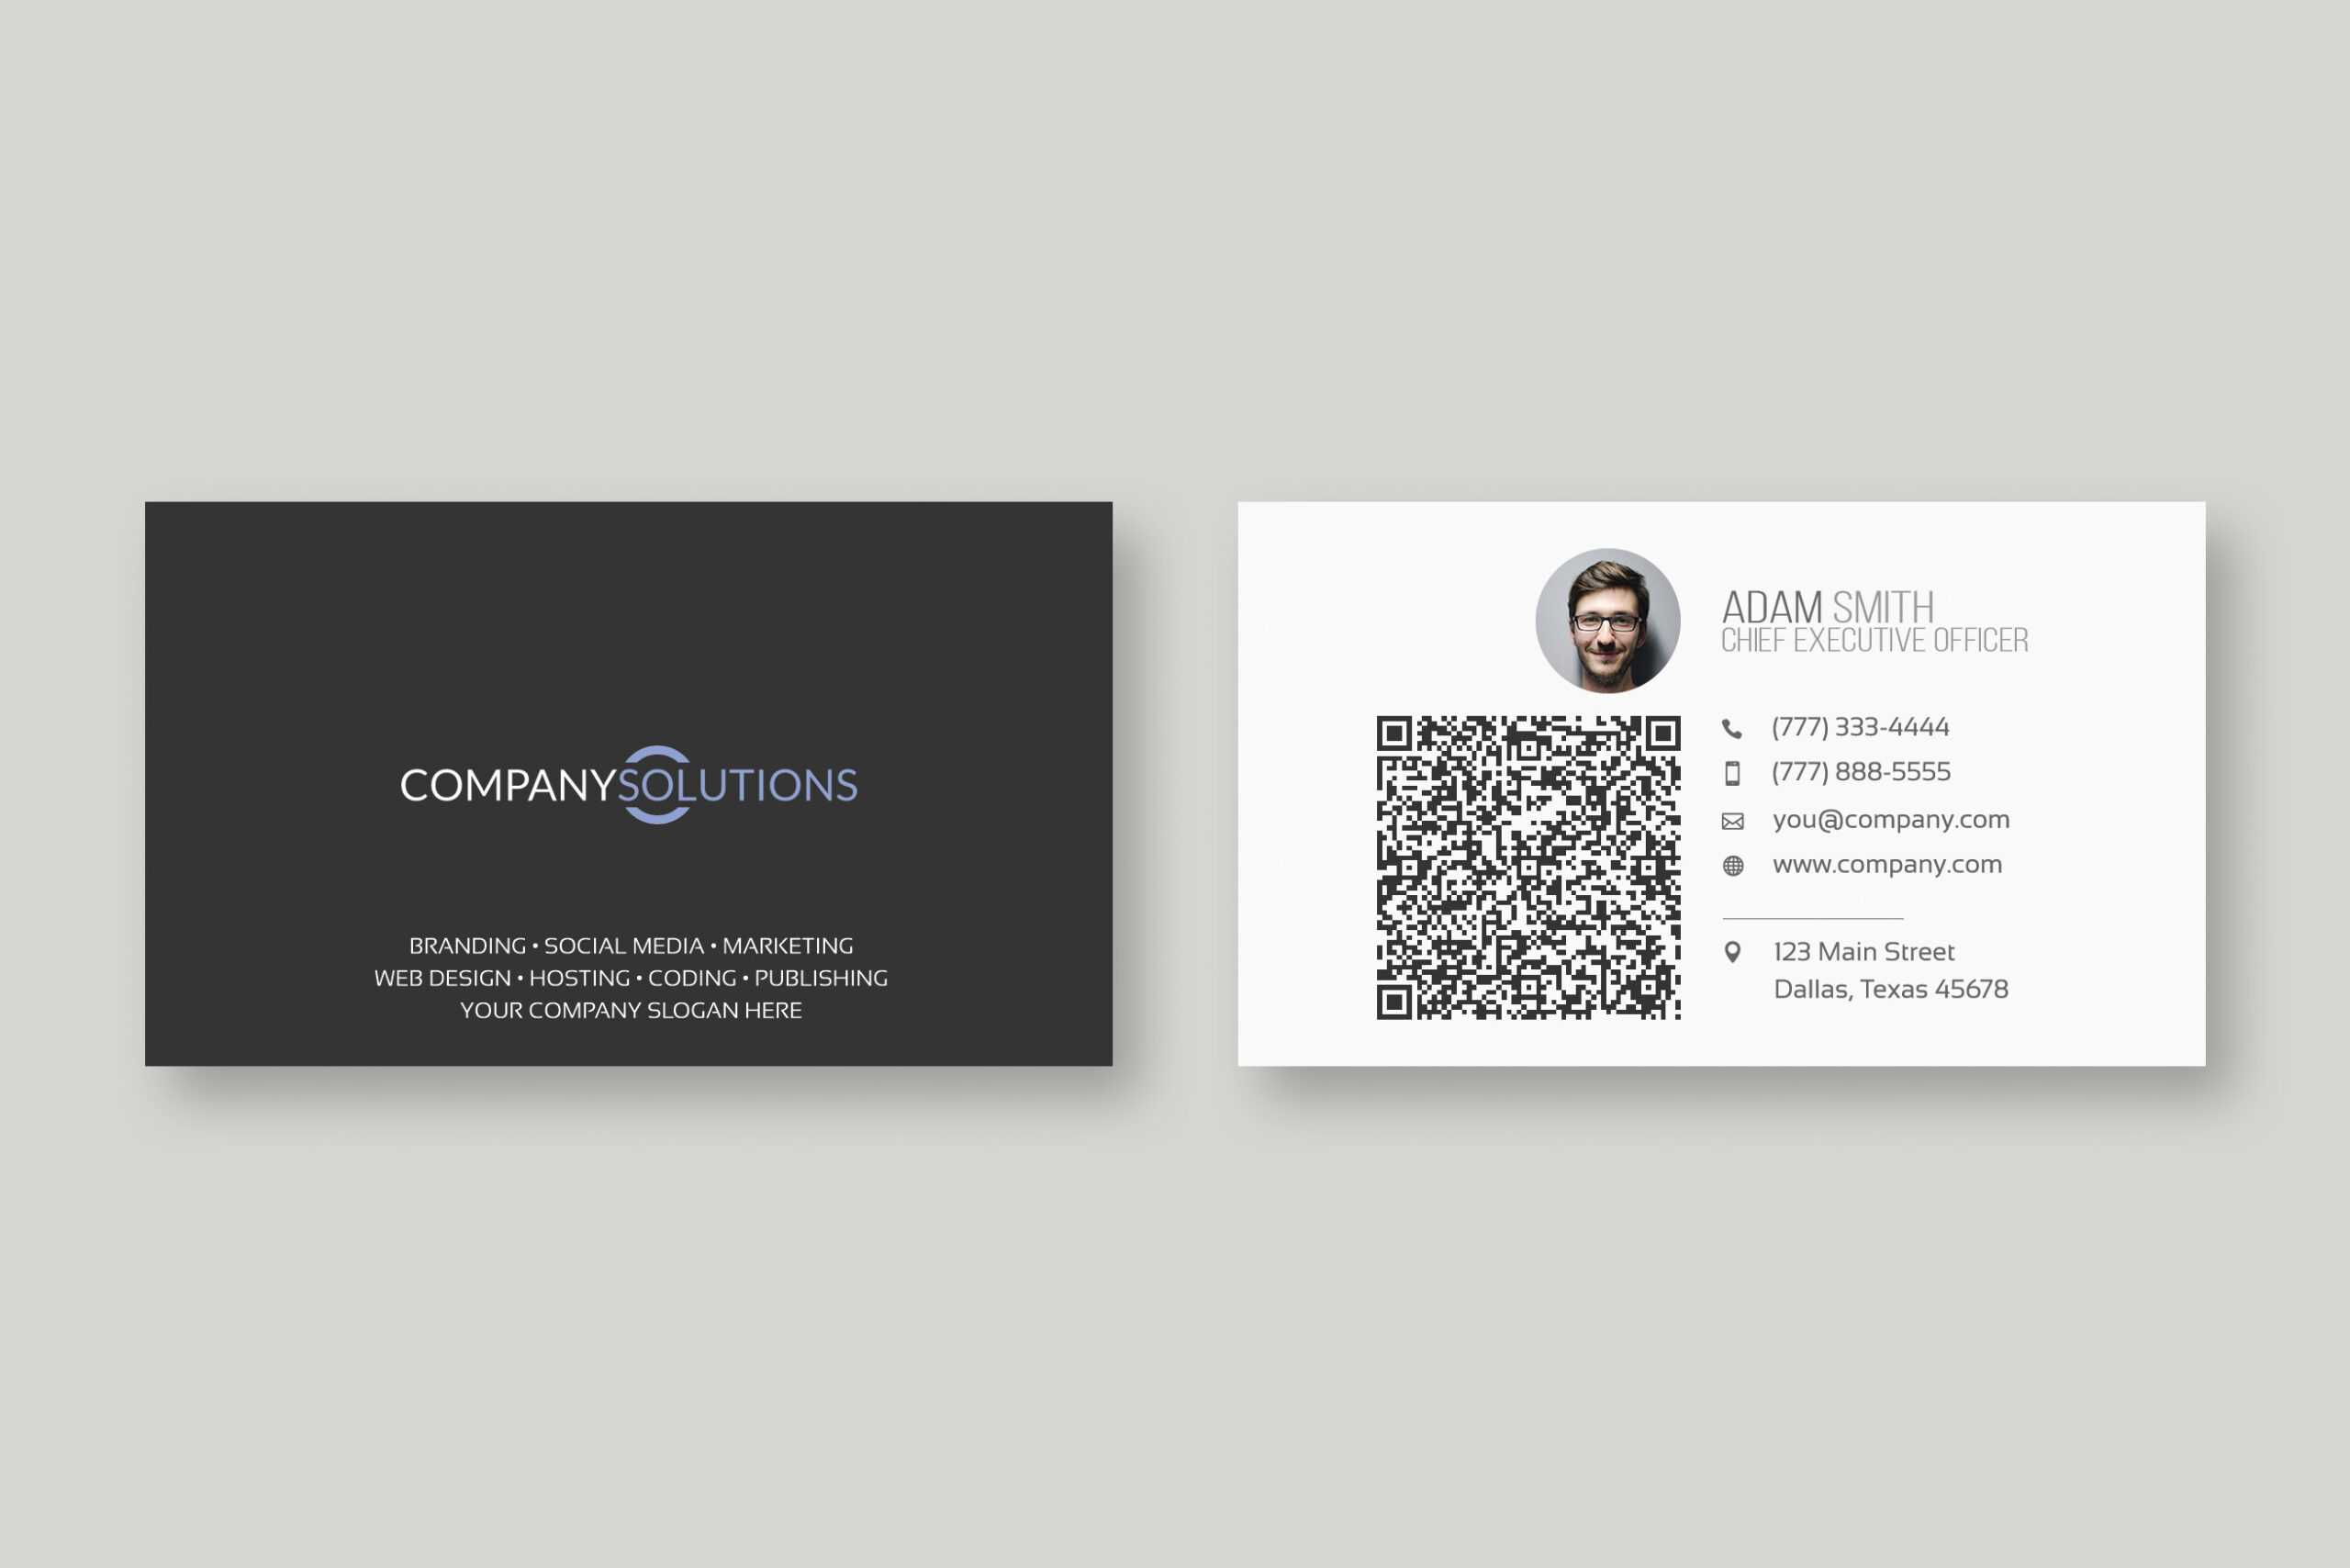 Qr Bussiness Card - Zohre.horizonconsulting.co Intended For Qr Code Business Card Template